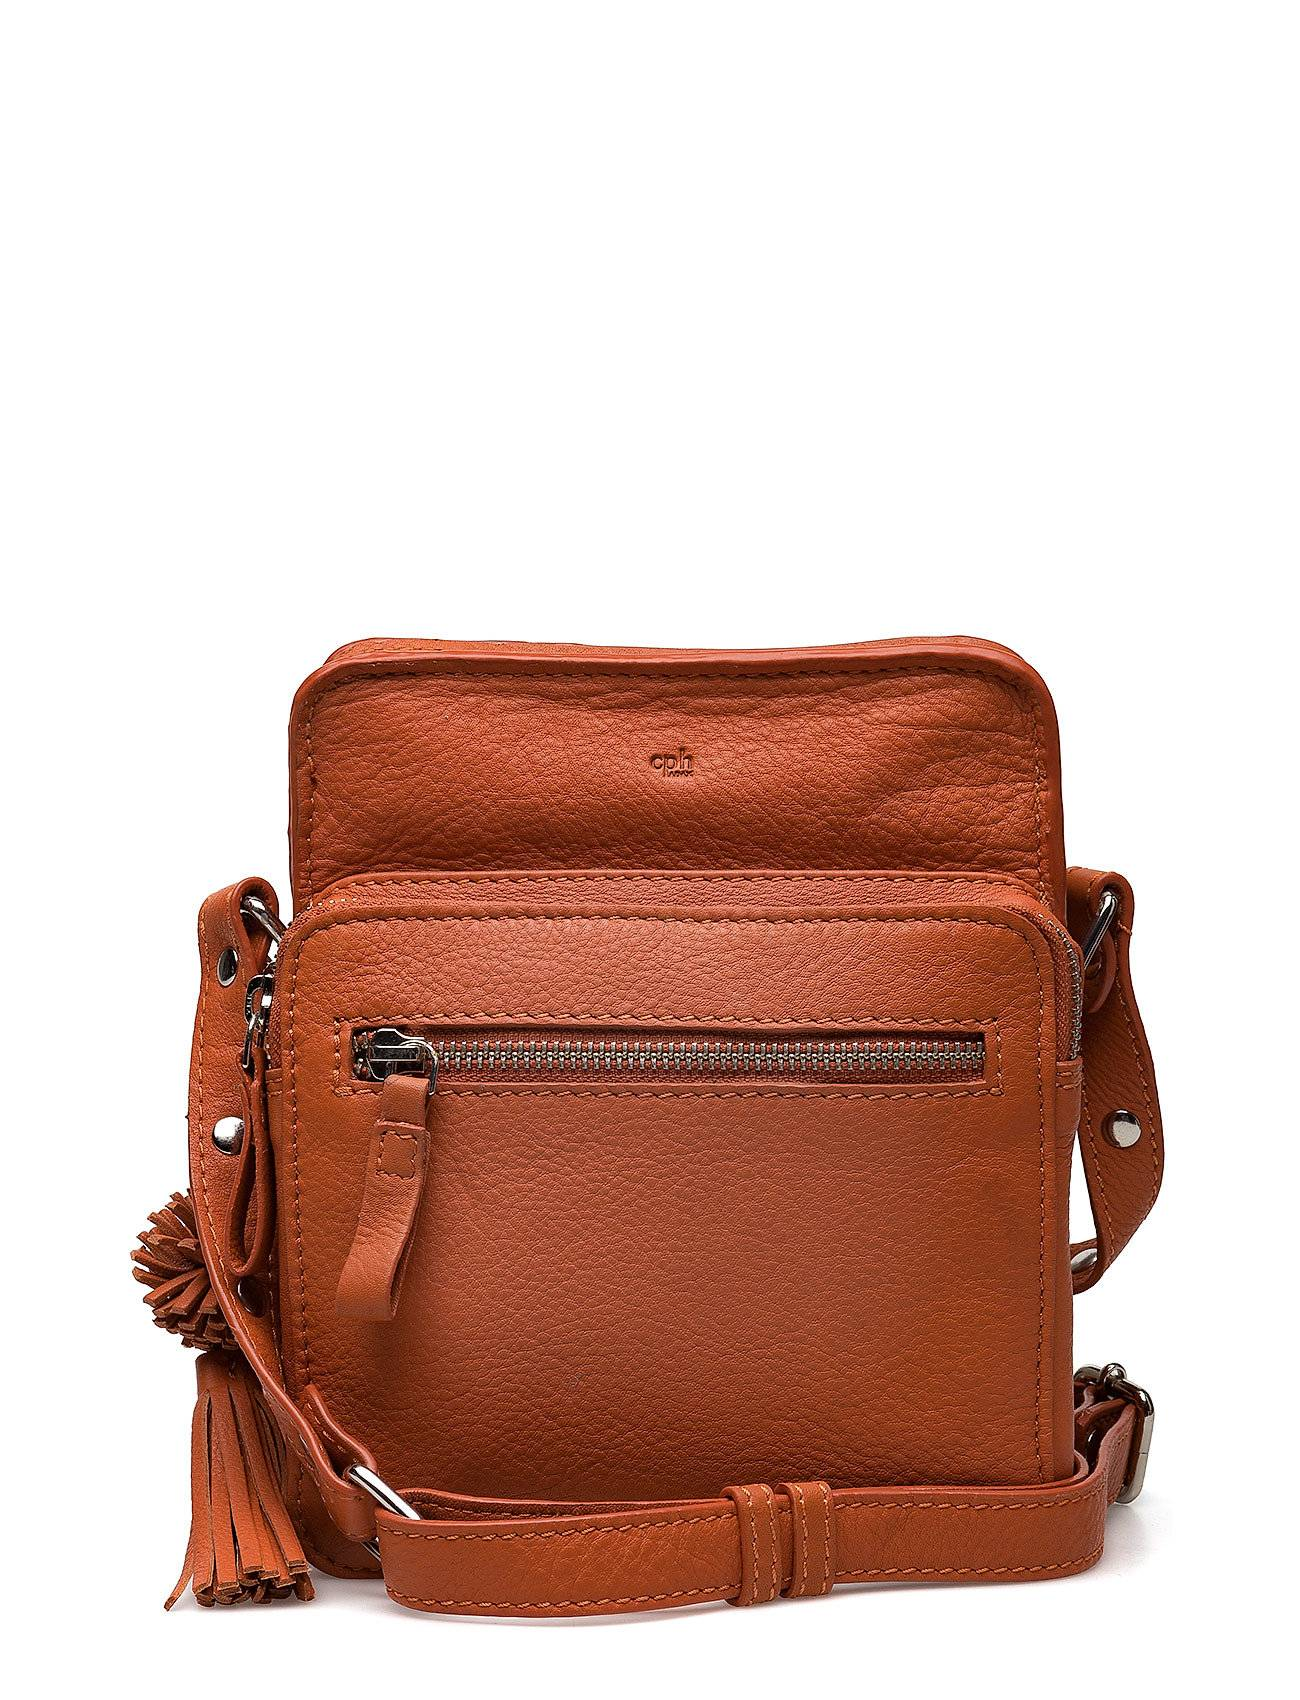 Adax Ruby Shoulder Bag Hilde